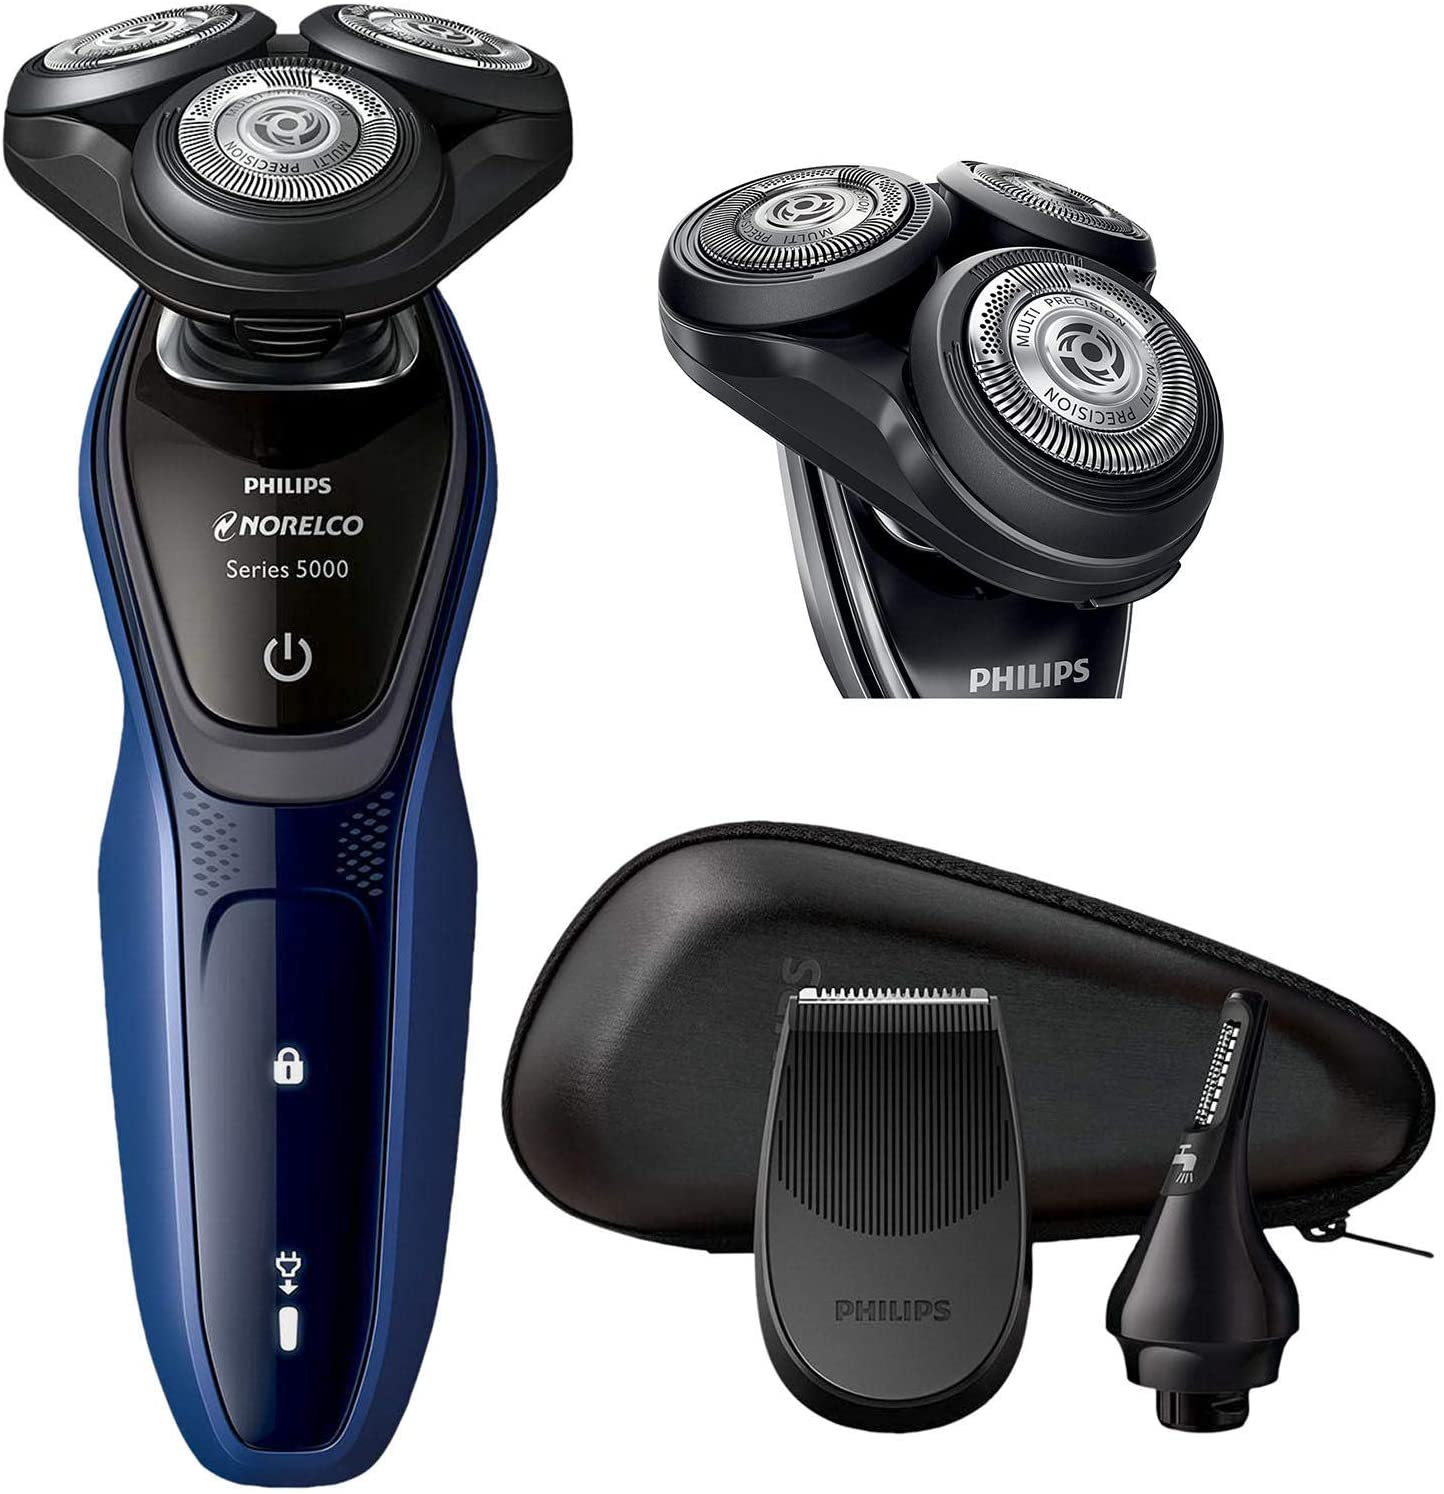 Philips Norelco Shaver with SmartClick Nose & Ear Trimmer